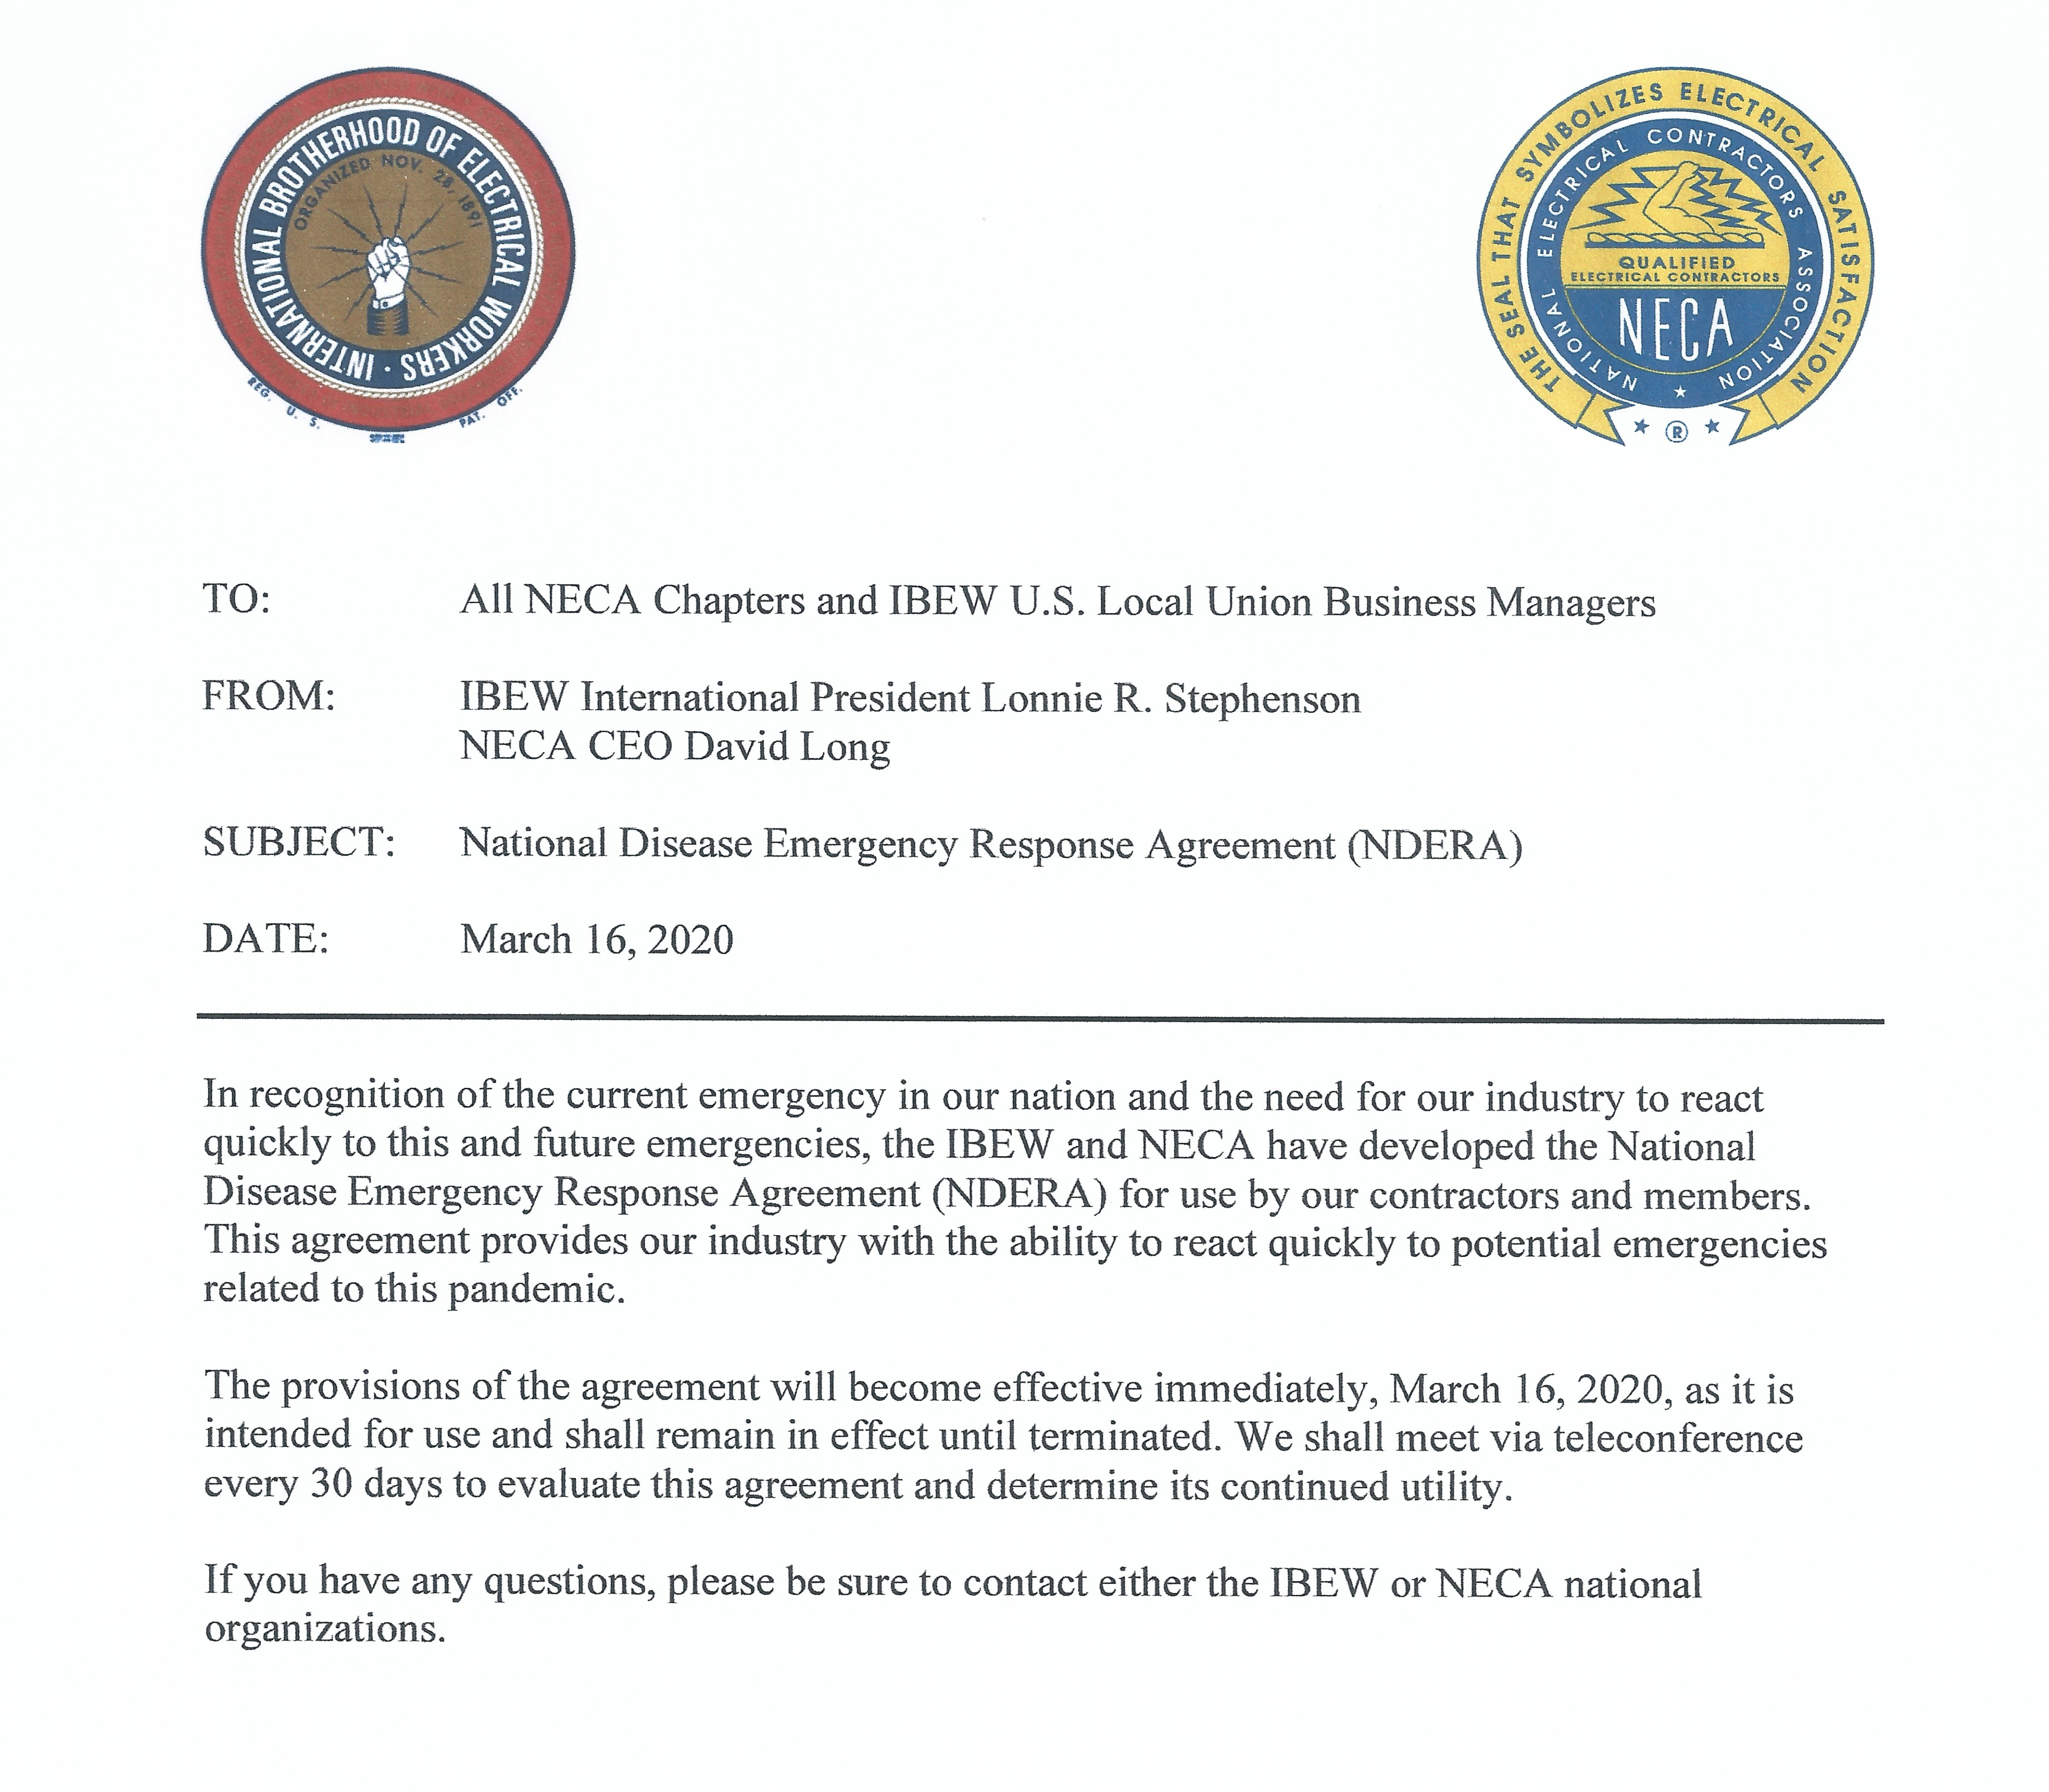 <br /><strong>IBEW and NECA issue National Disease Emergency Response Agreement (NDERA)